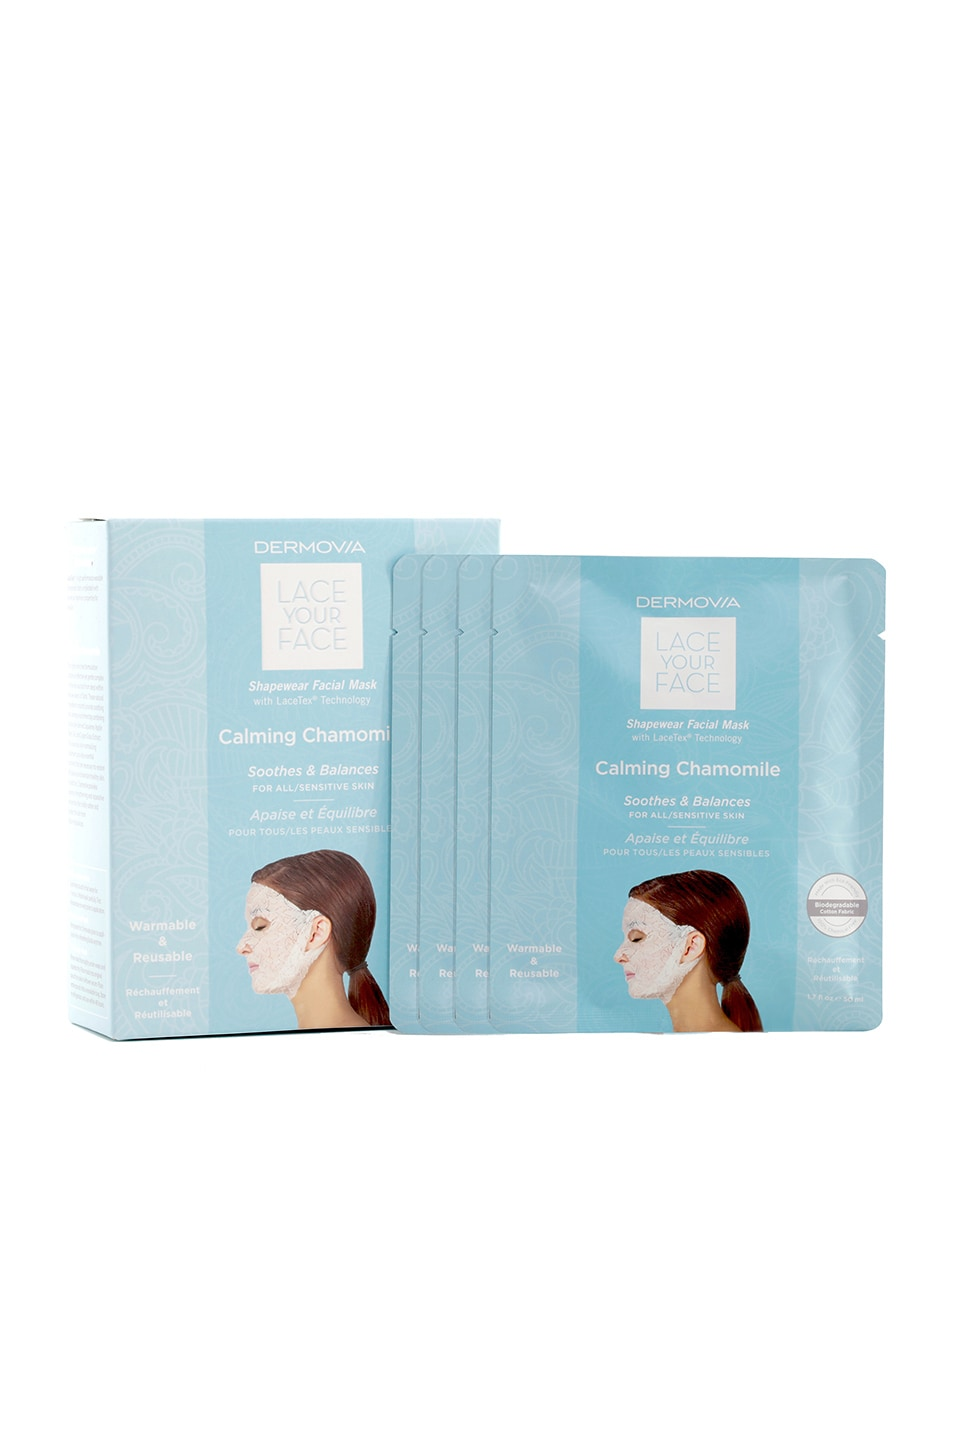 Dermovia Calming Chamomile Lace Your Face Mask 4 Pack